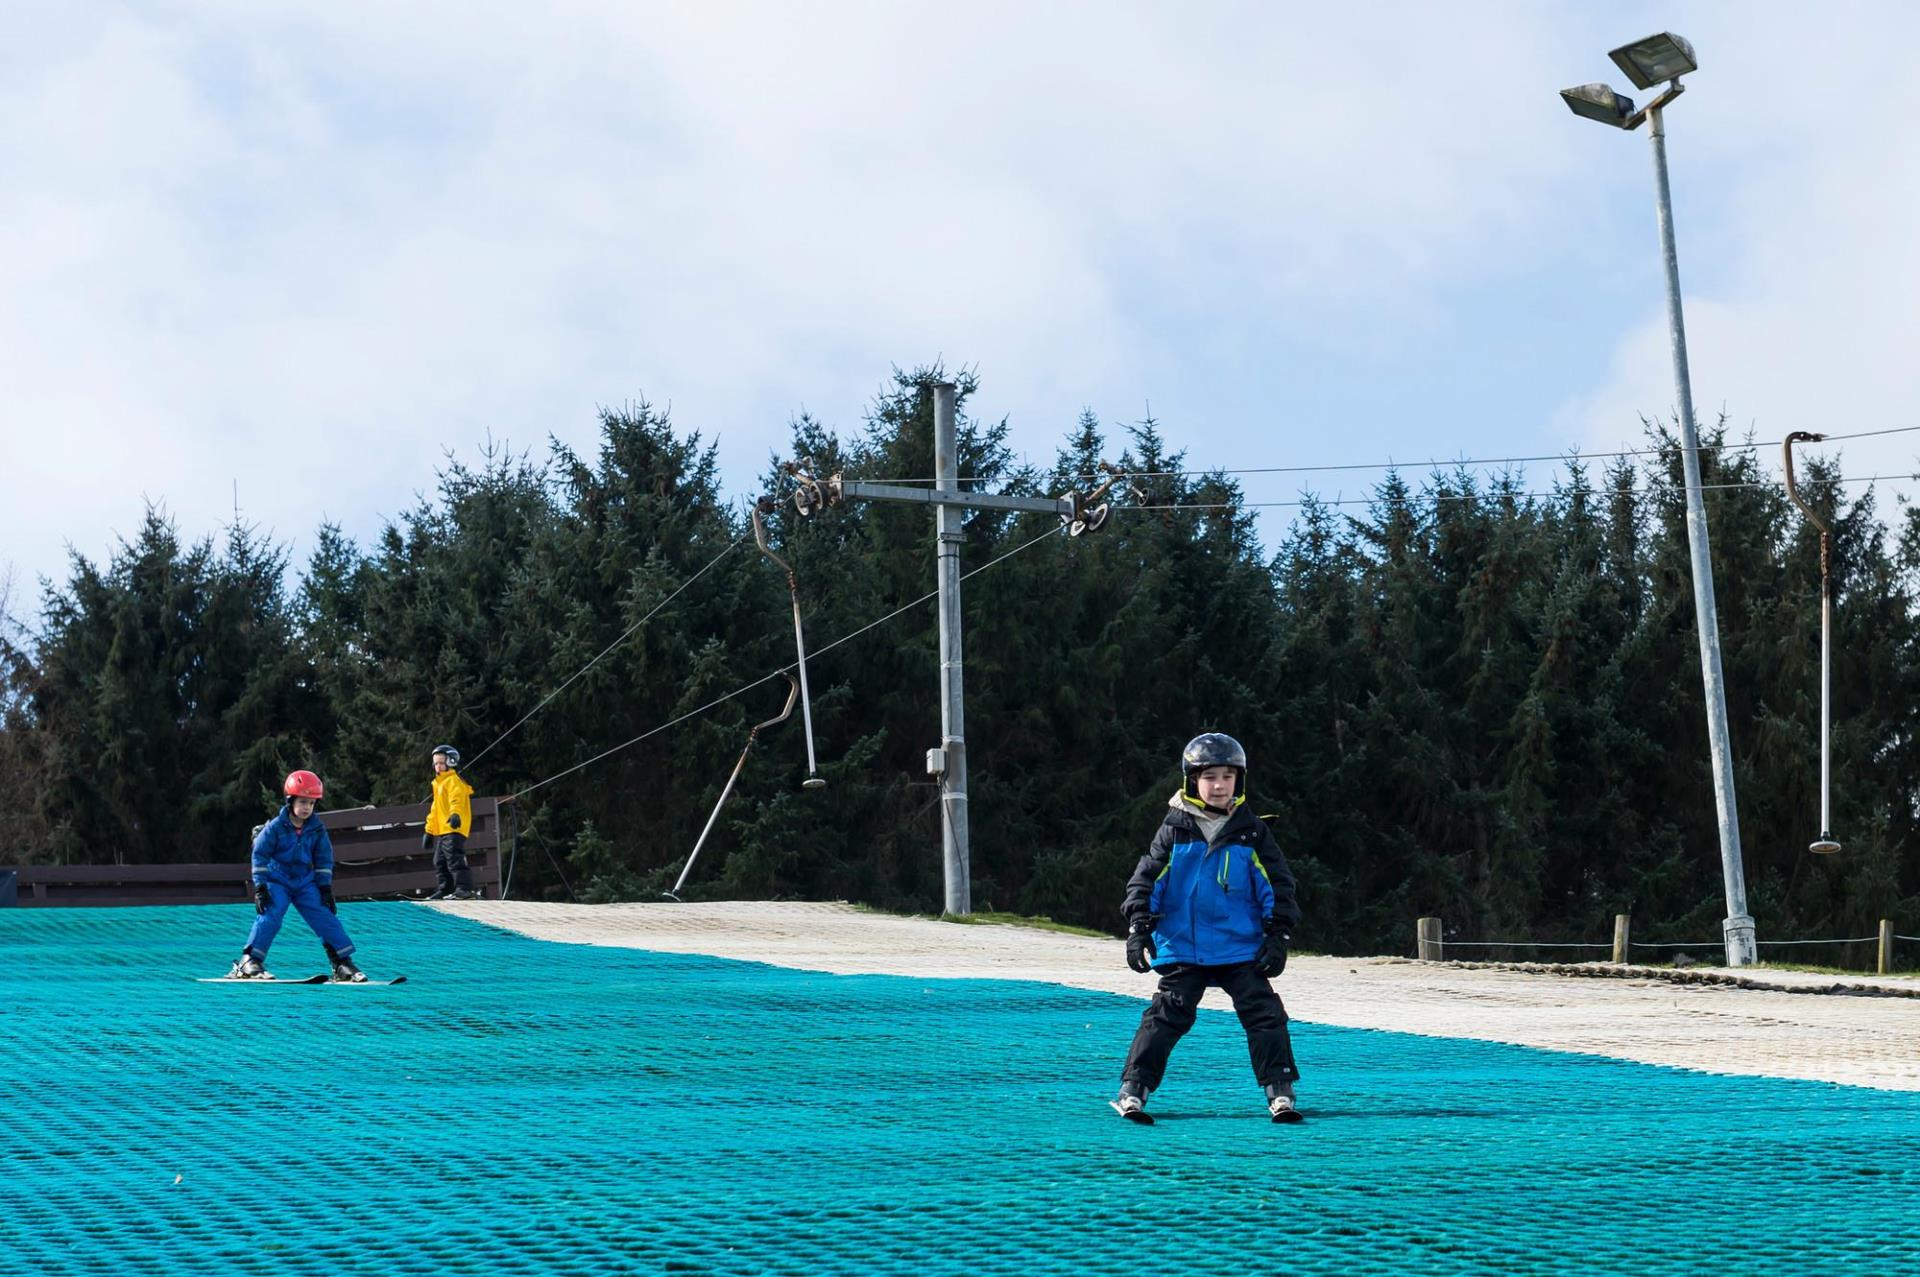 The ski centres in Alford and Huntly will reopen this weekend